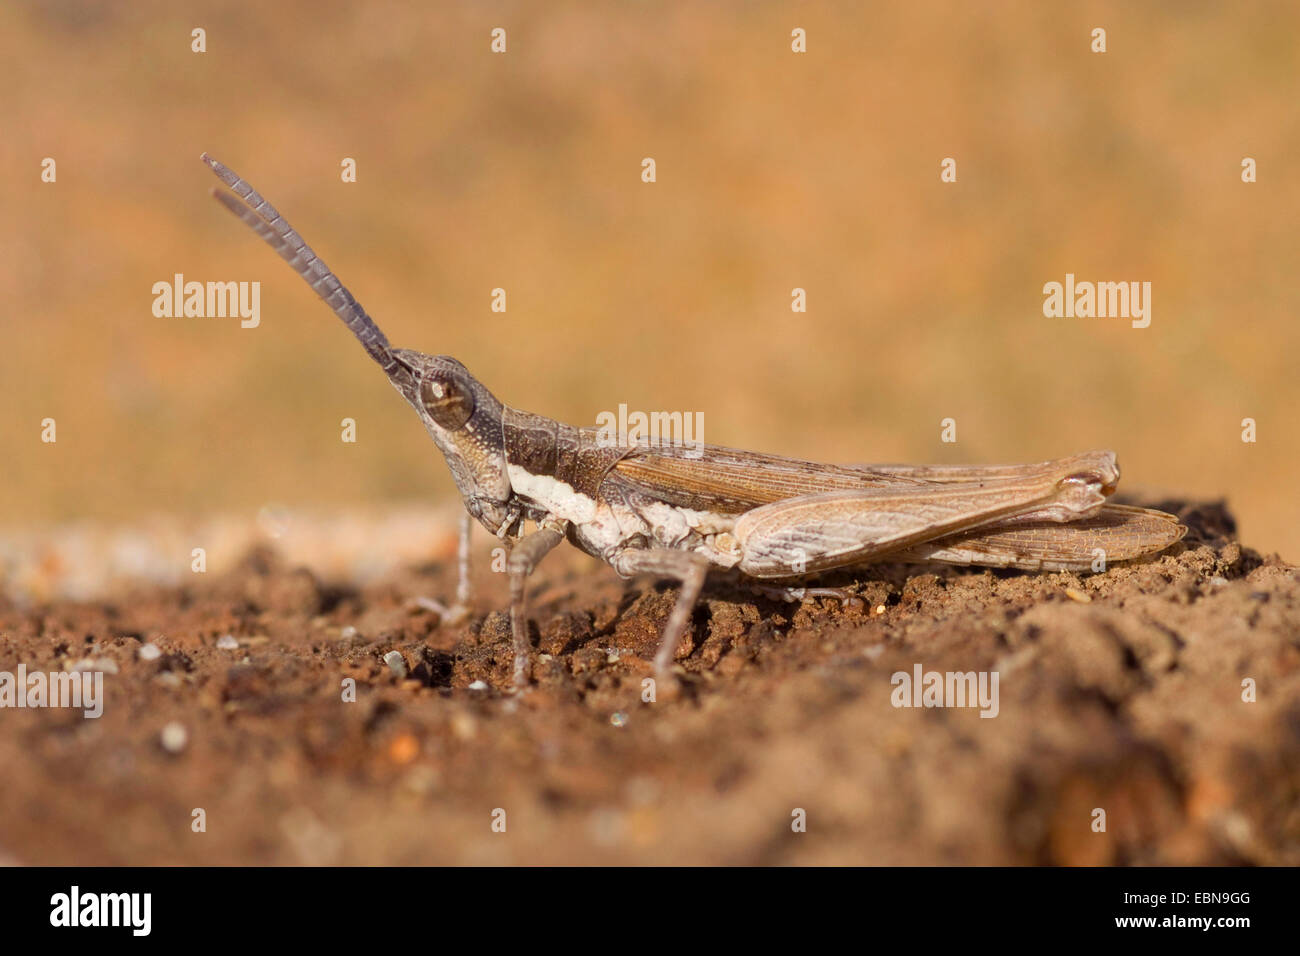 Grasshopper (Pyrgomorpha conica), full length portrait, Portugal - Stock Image